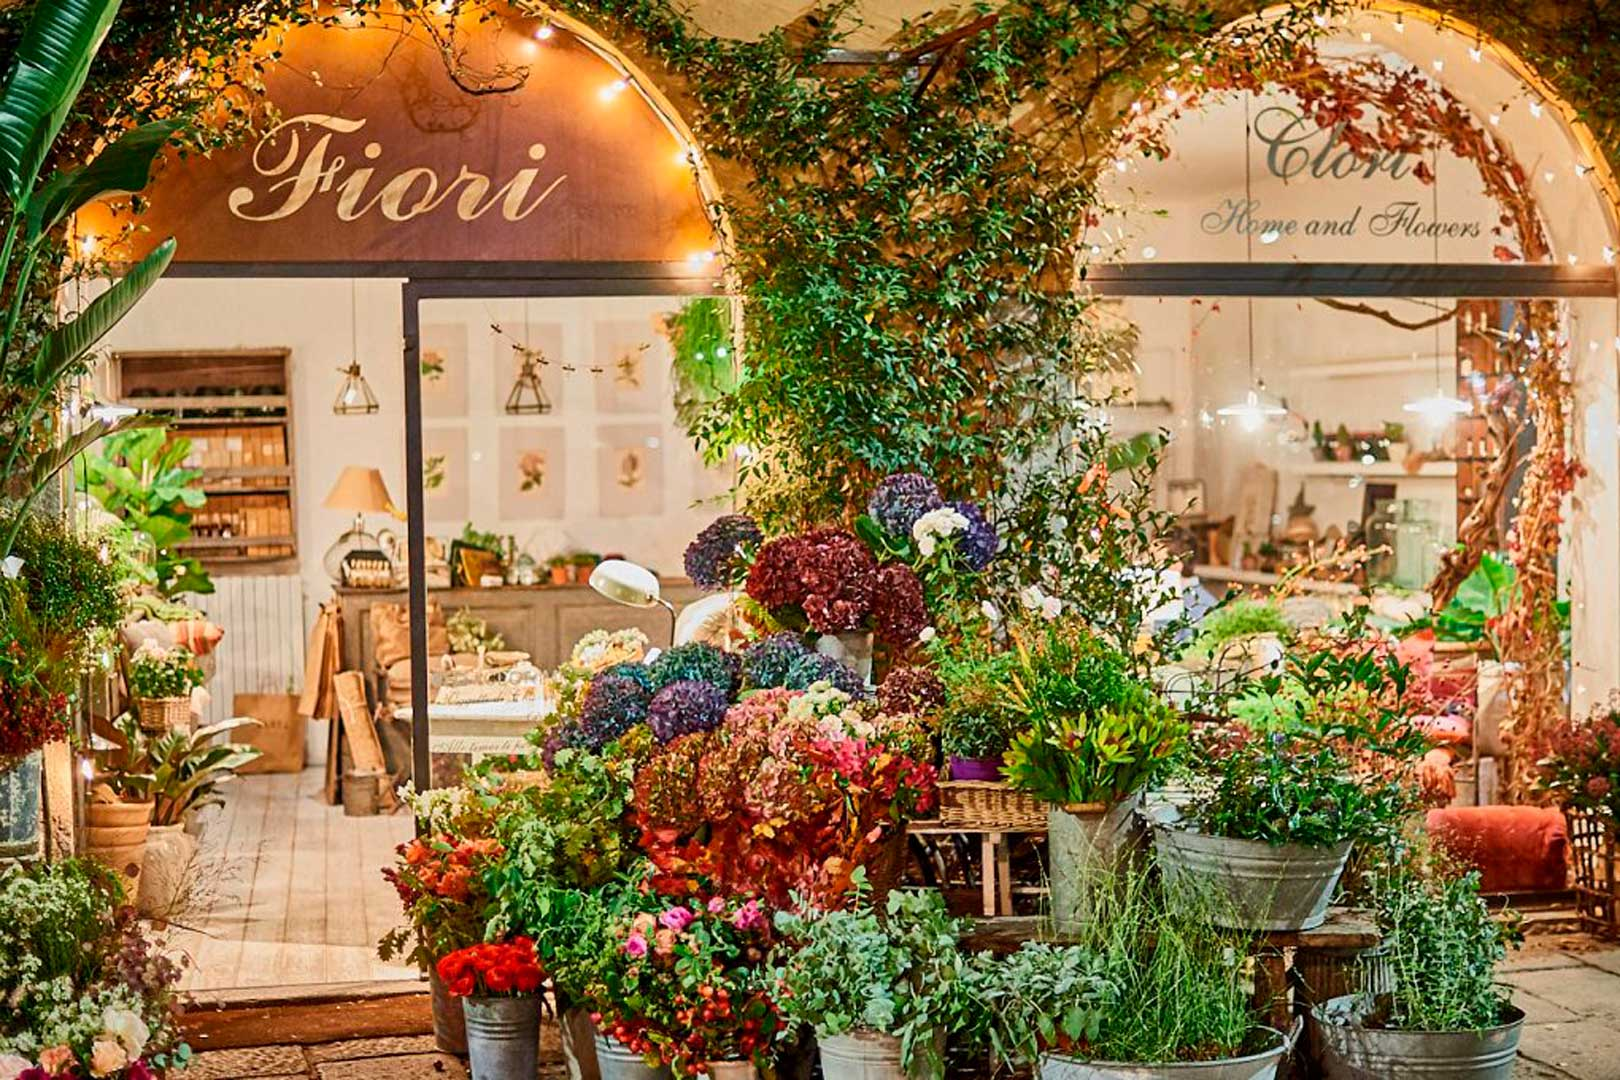 Negozi Di Design A Milano the 10 best flower shops in milan | flawless milano